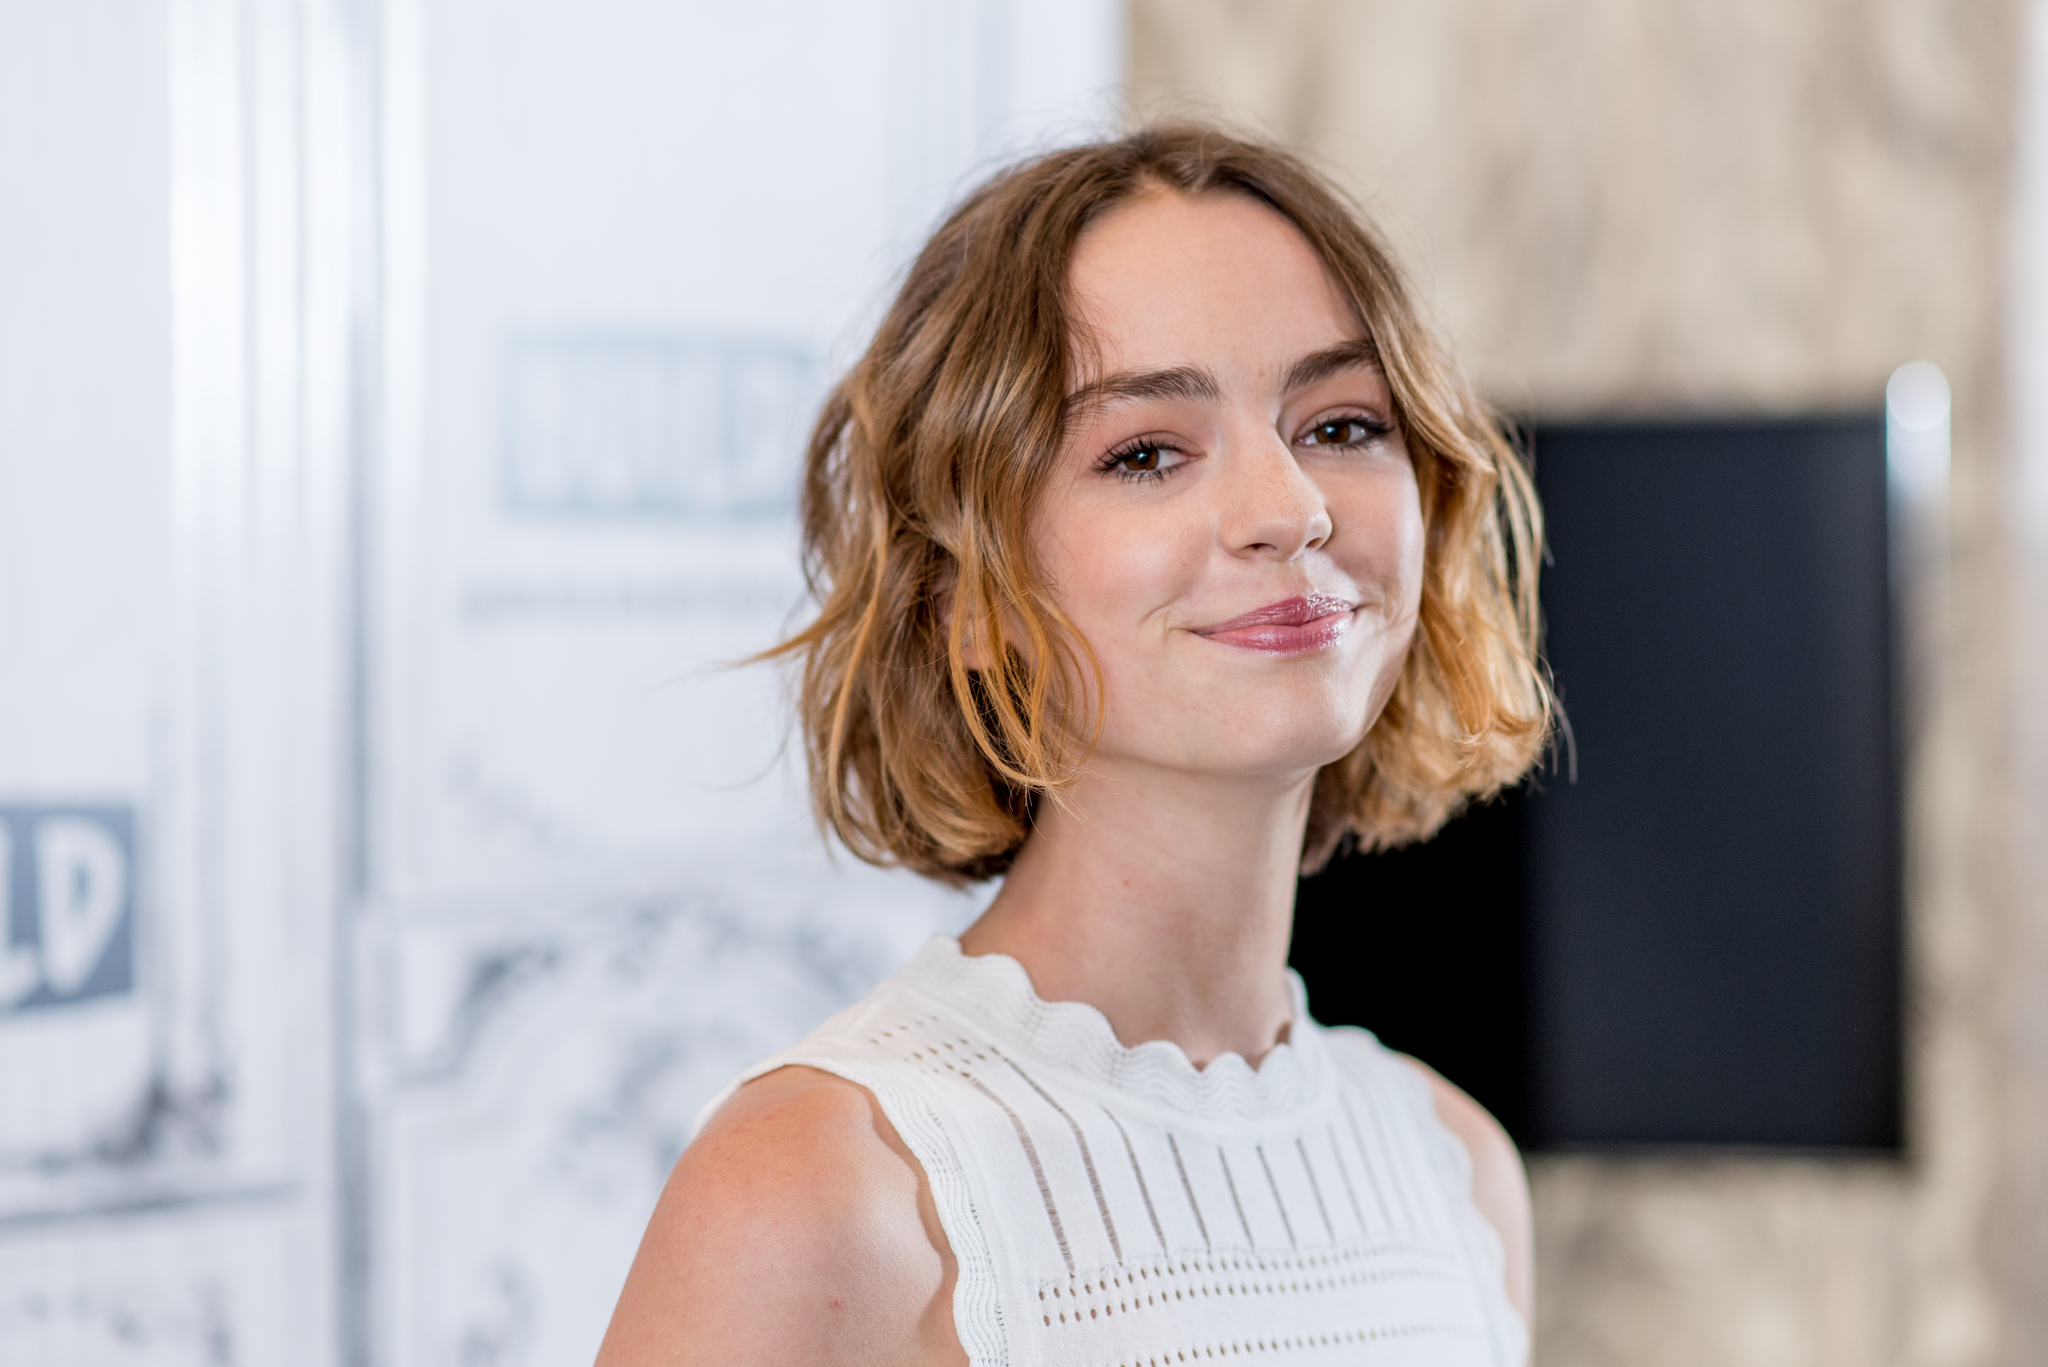 Photos Brigette Lundy-Paine nudes (87 photos), Leaked